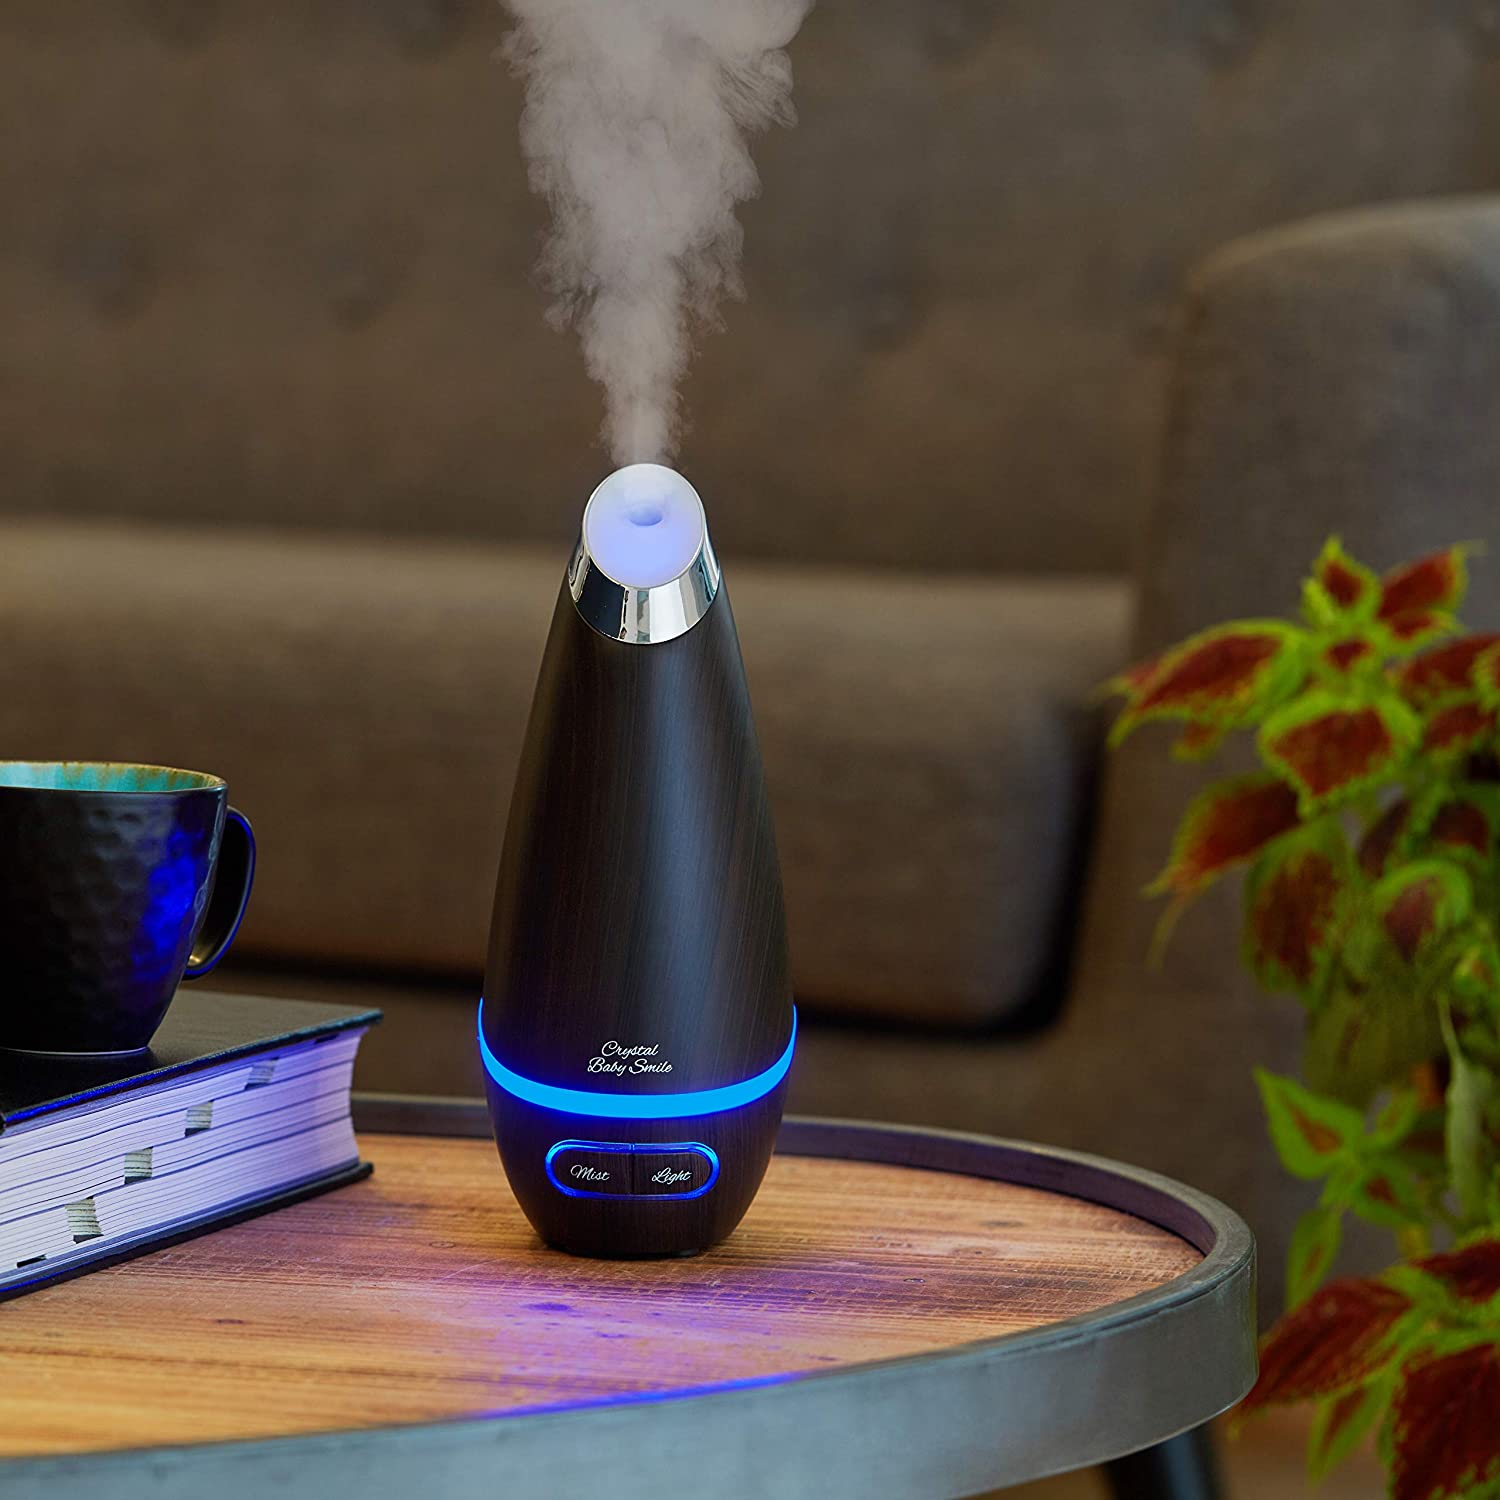 Crystal Baby Smile Essential Oil Diffuser 110 ML Aromatherapy Ultrasonic Diffuser for Oils BPA Free, Aroma Humidifier with a Cool Mist for Pure